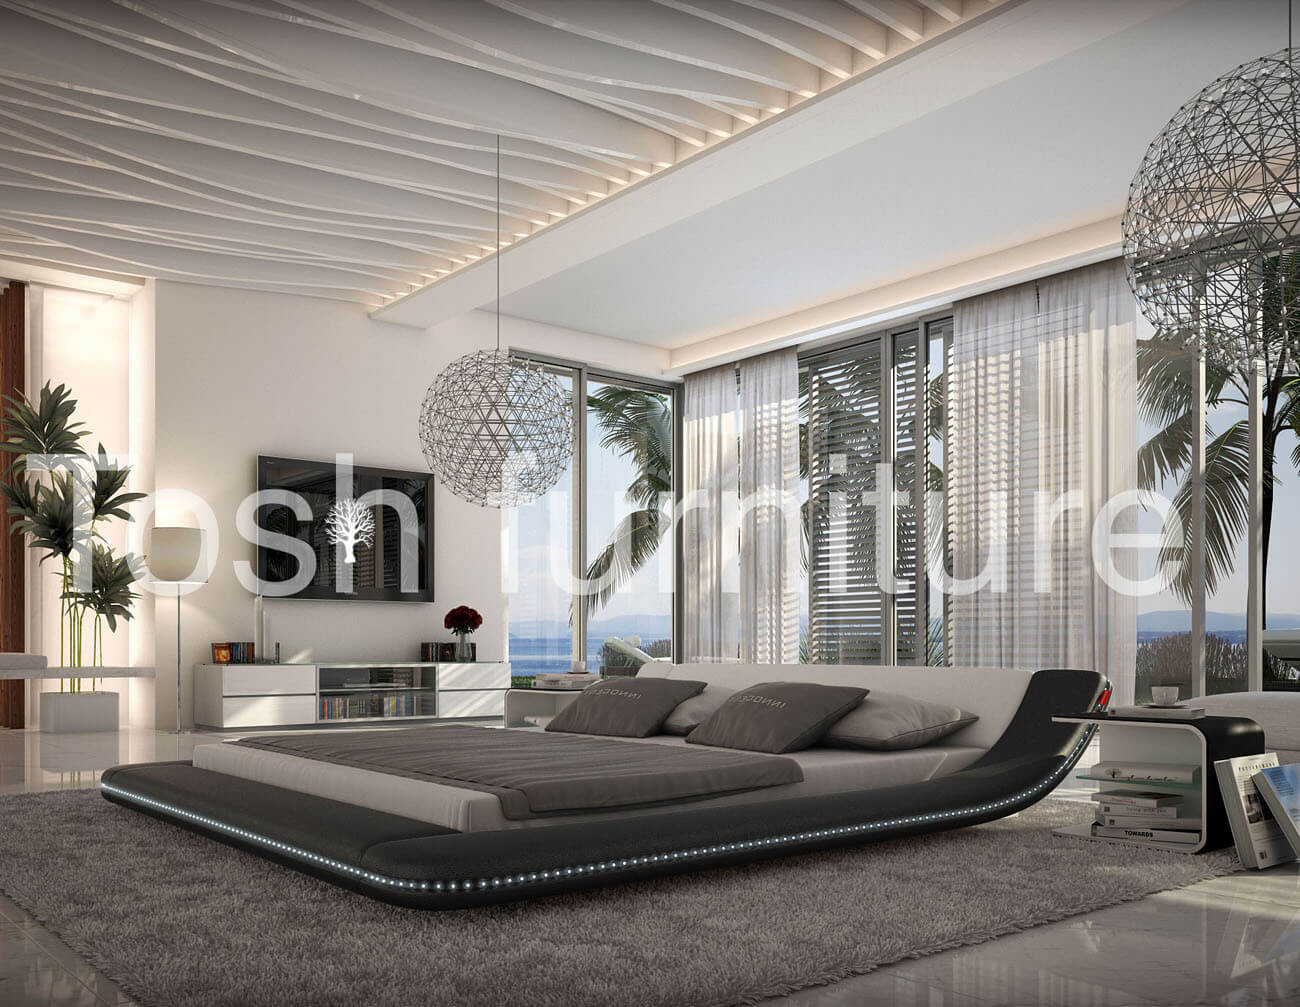 With modern style, there can be a lot of crossover with contemporary beds. The idea is that a piece of modern furniture has an up to date design, and is most definitely not traditional or old fashioned.